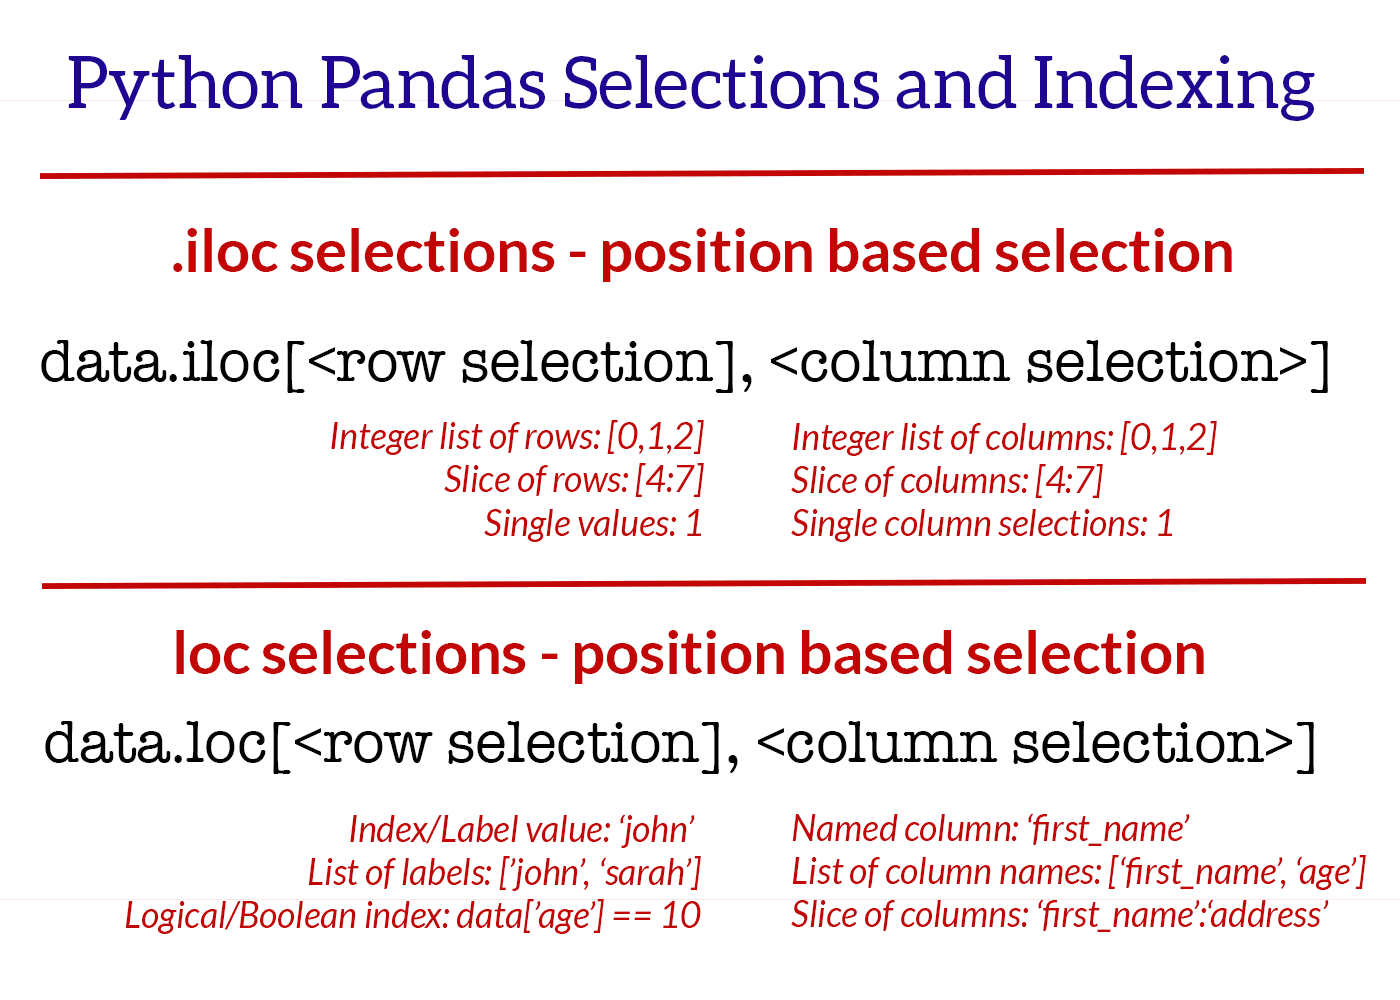 iloc and loc indexing is achieved with pandas using two main arguments for rows and columns